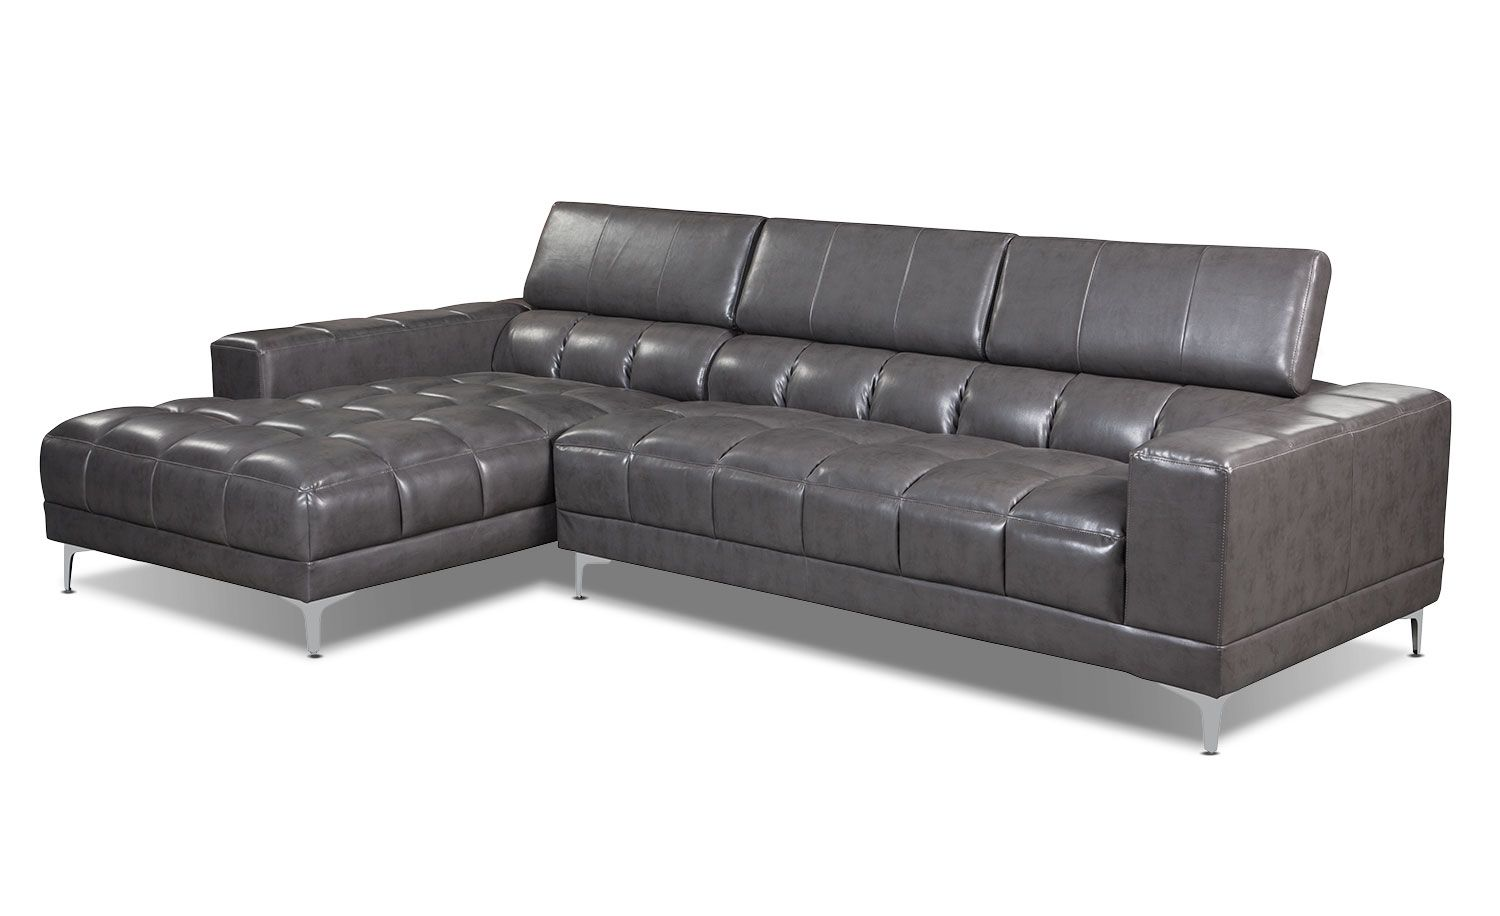 Zippa 2-Piece Bonded Leather Left-Facing Sectional u2013 Grey | The Brick  sc 1 st  Pinterest : the brick leather sectional - Sectionals, Sofas & Couches